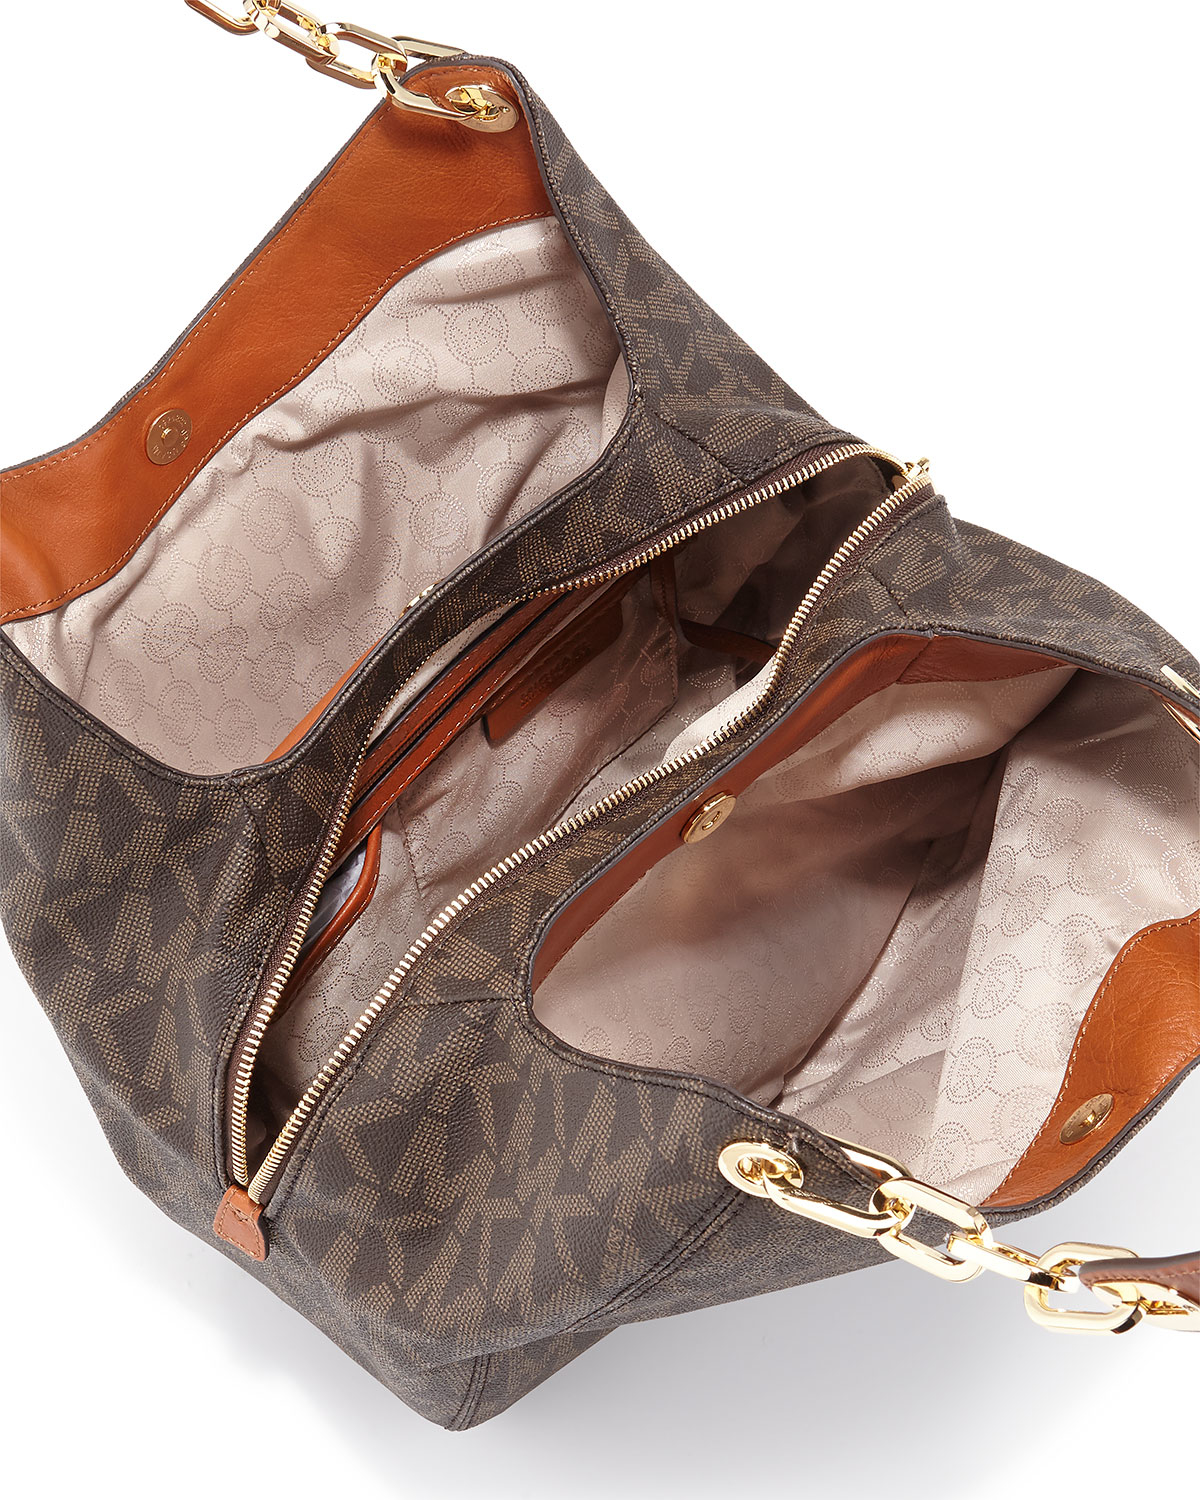 100ef34b022f ... large shoulder tote in signature print 969d8 6441e; spain gallery.  previously sold at neiman marcus womens michael by michael kors fulton  d89cf 8fd16